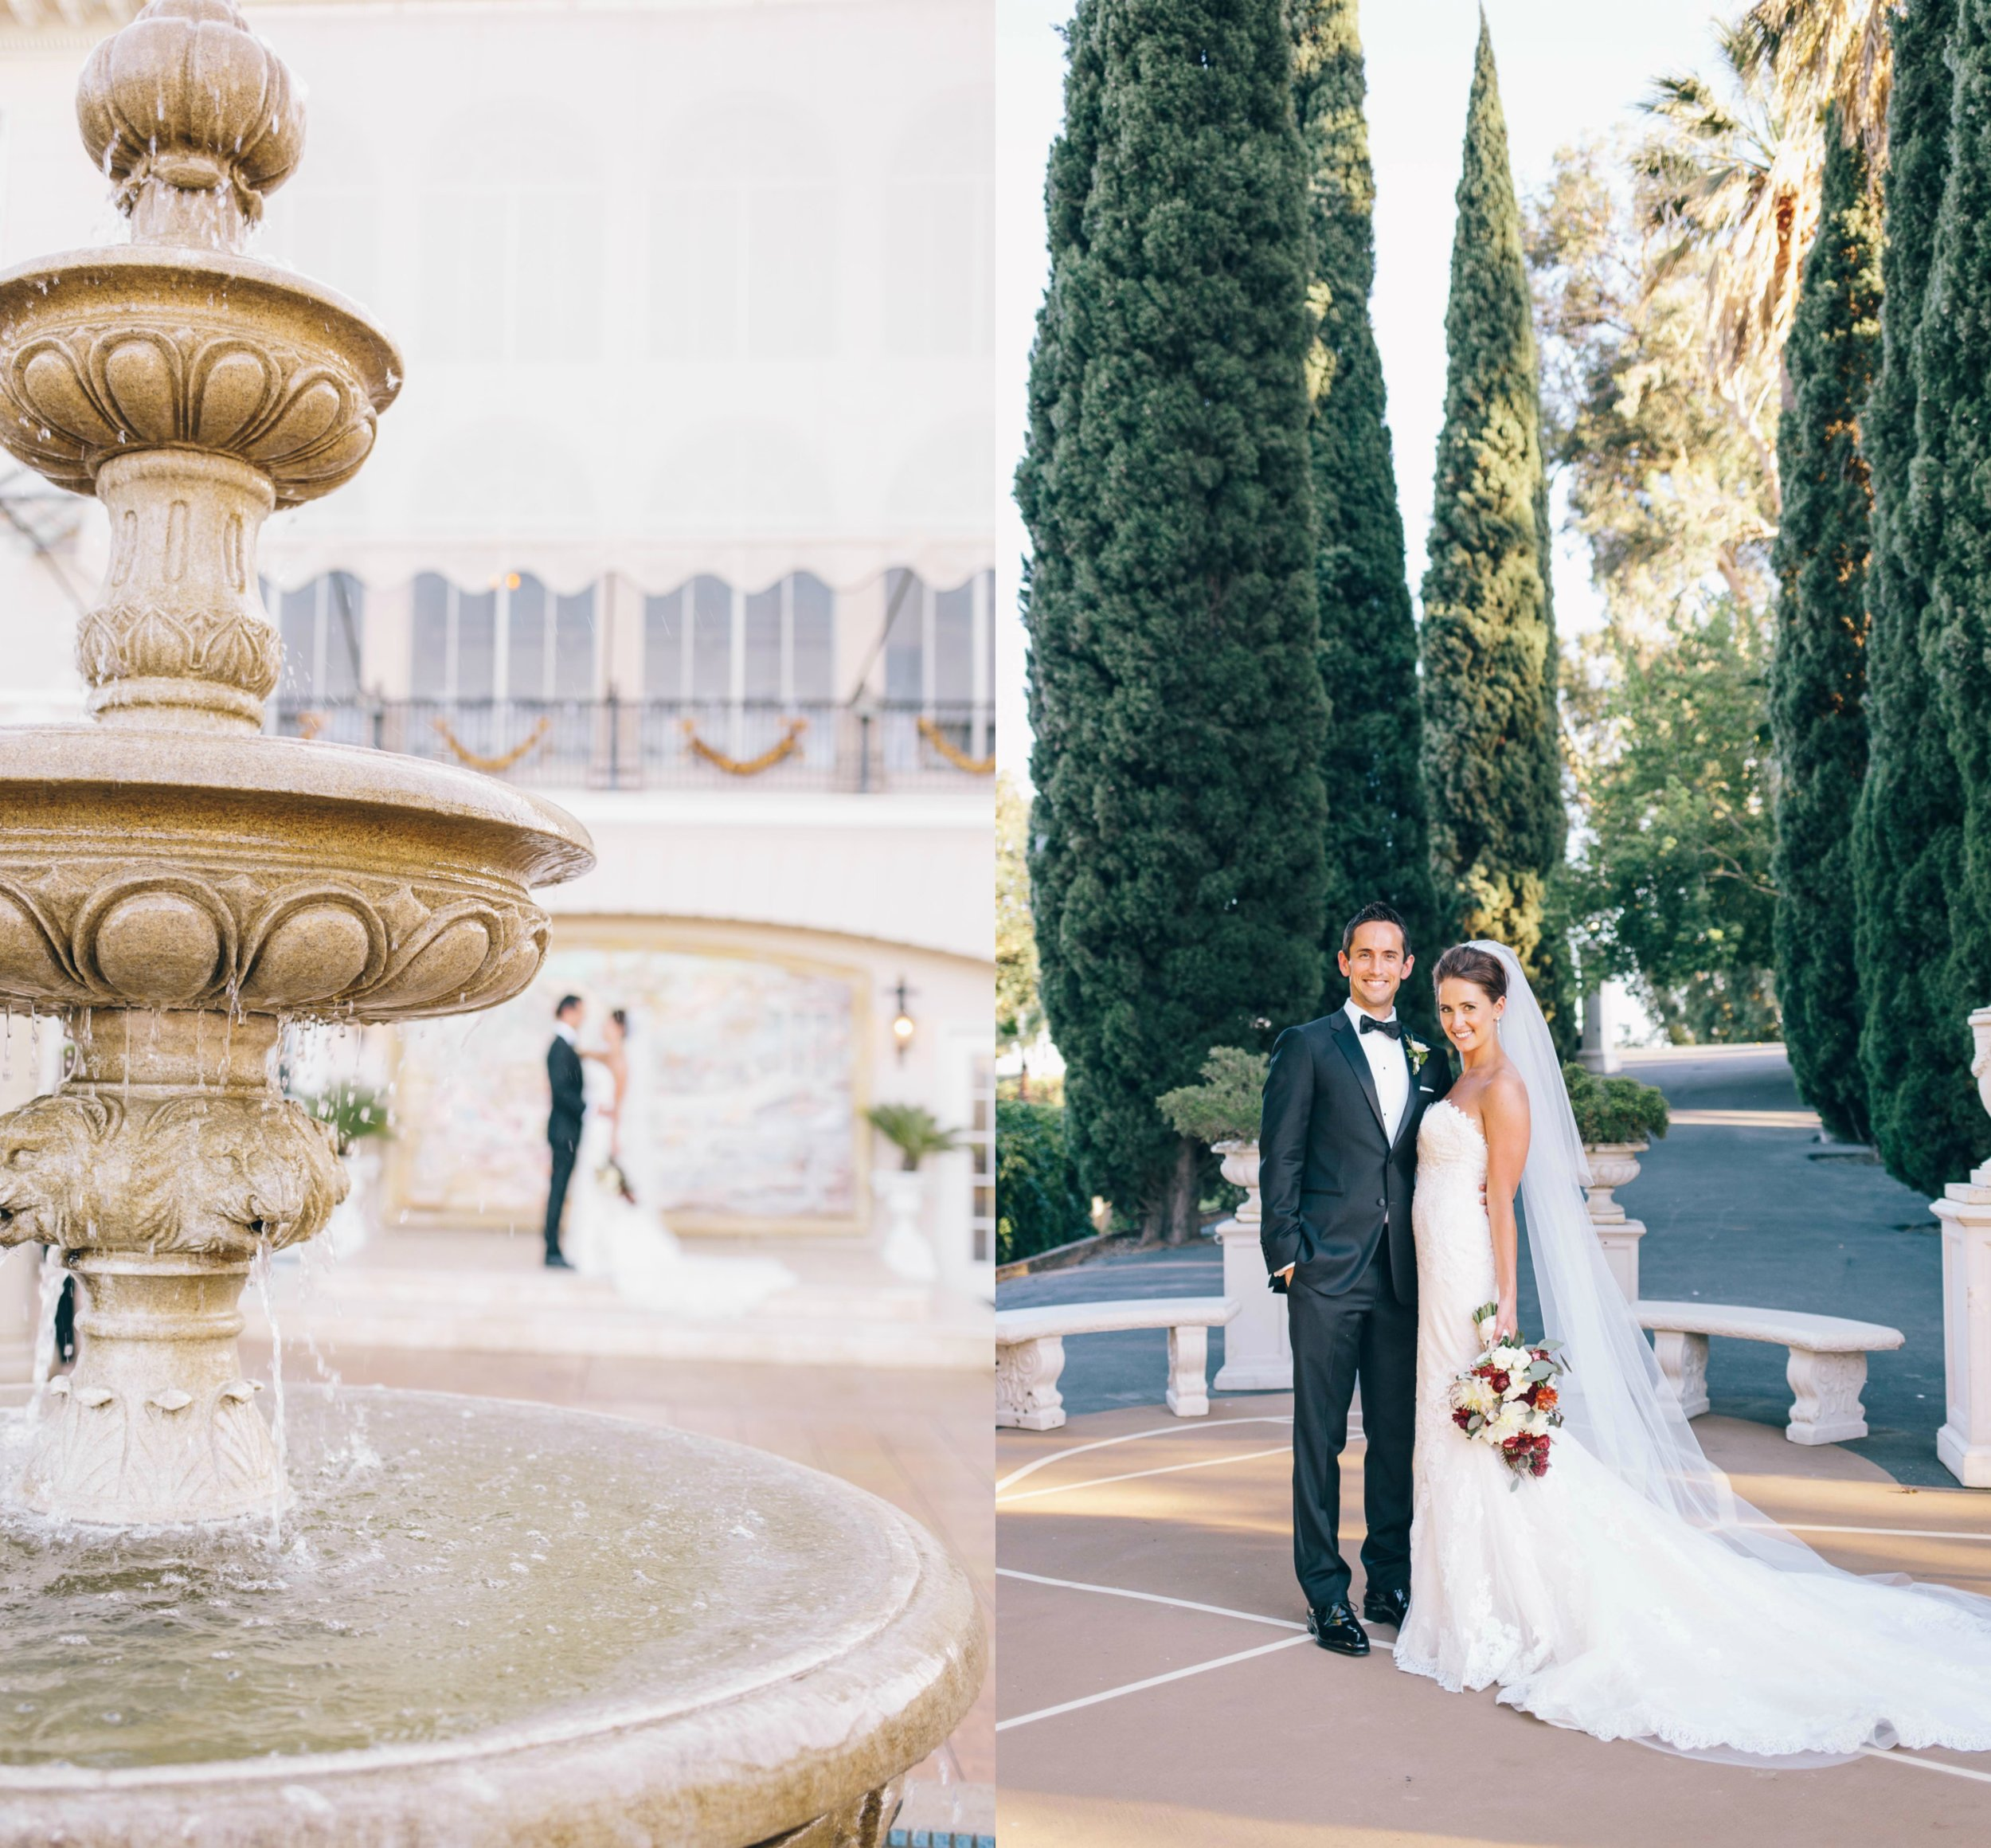 Pearly and Mark - Grand Island Mansion Wedding - Summer - JBJ Pictures Wedding and Engagement Photographer in San Francisco and Sacramento (40b).jpg